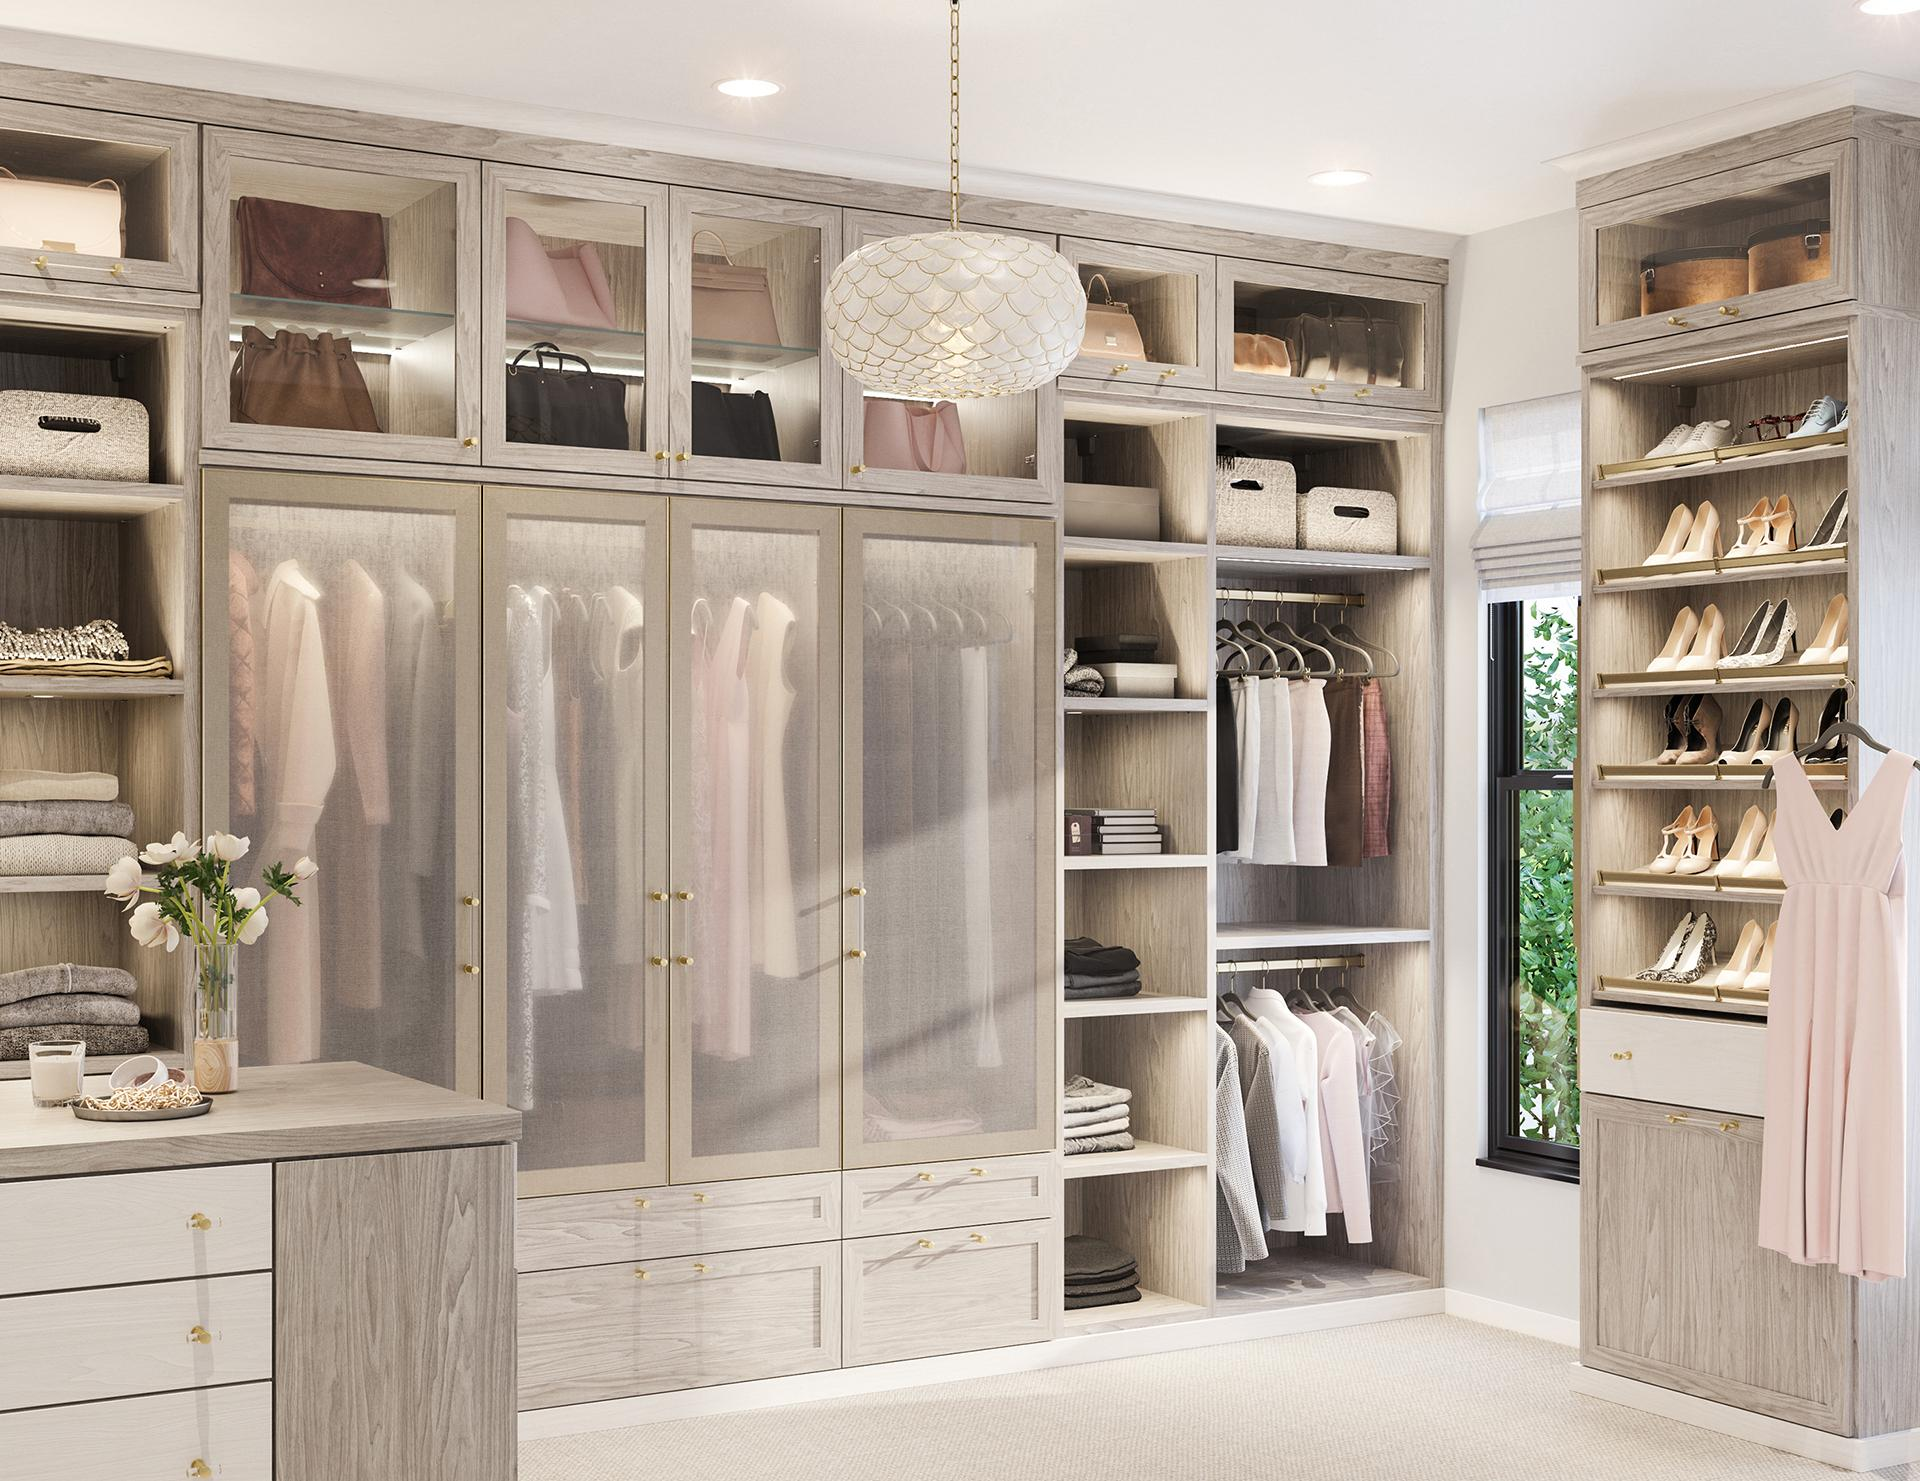 Walk In Closet Design Ideas Light With Pull Out Rack Accessories By California Closets